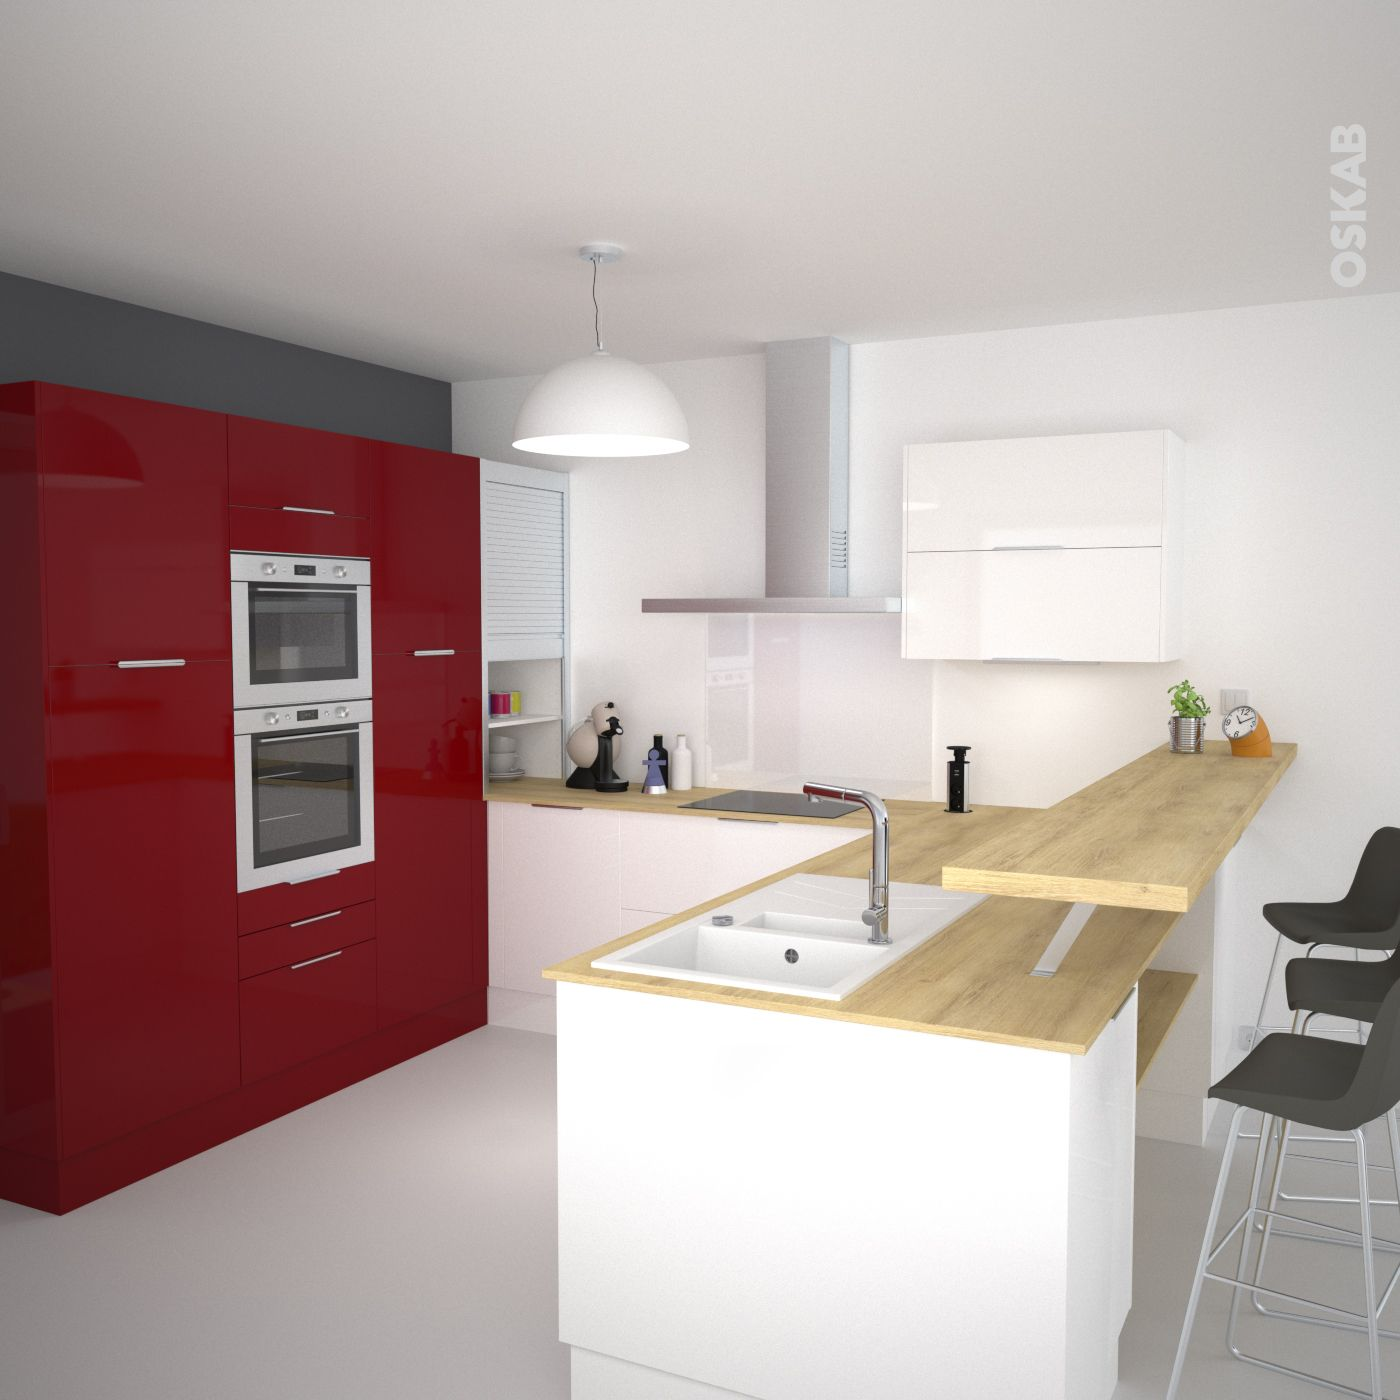 Cuisine rouge moderne fa ade stecia rouge brillant apartments and kitchens - Cuisine en bois rouge ...